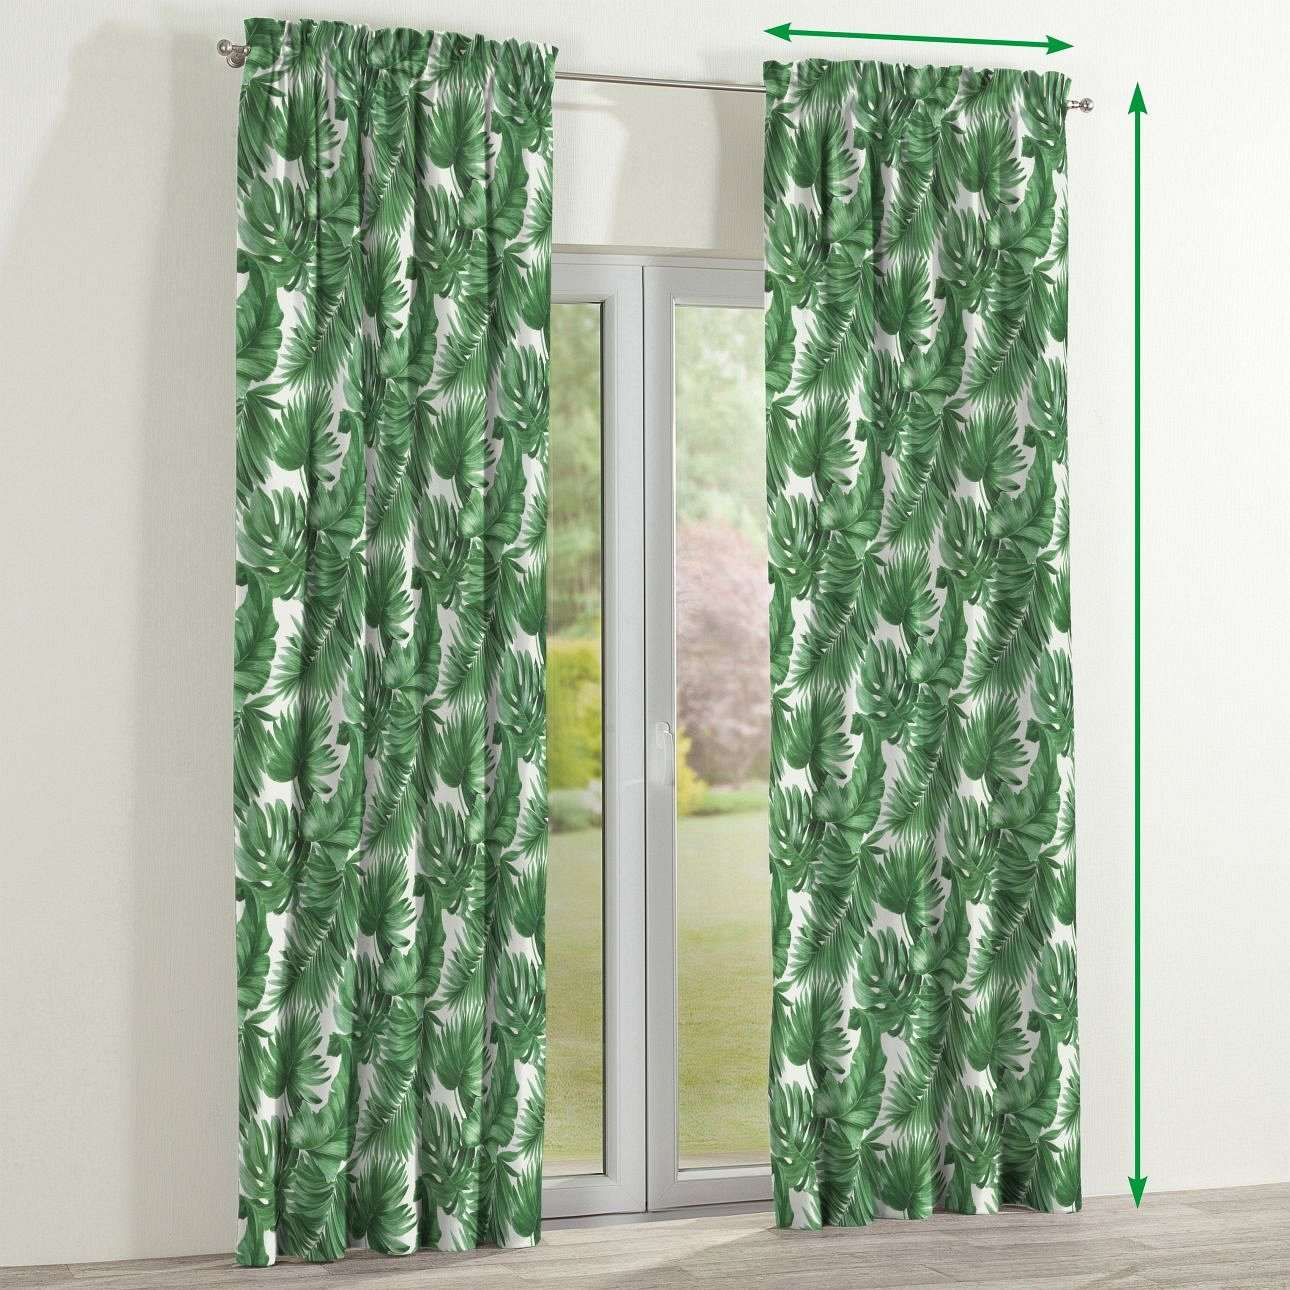 Slot and frill lined curtains in collection Urban Jungle, fabric: 141-71